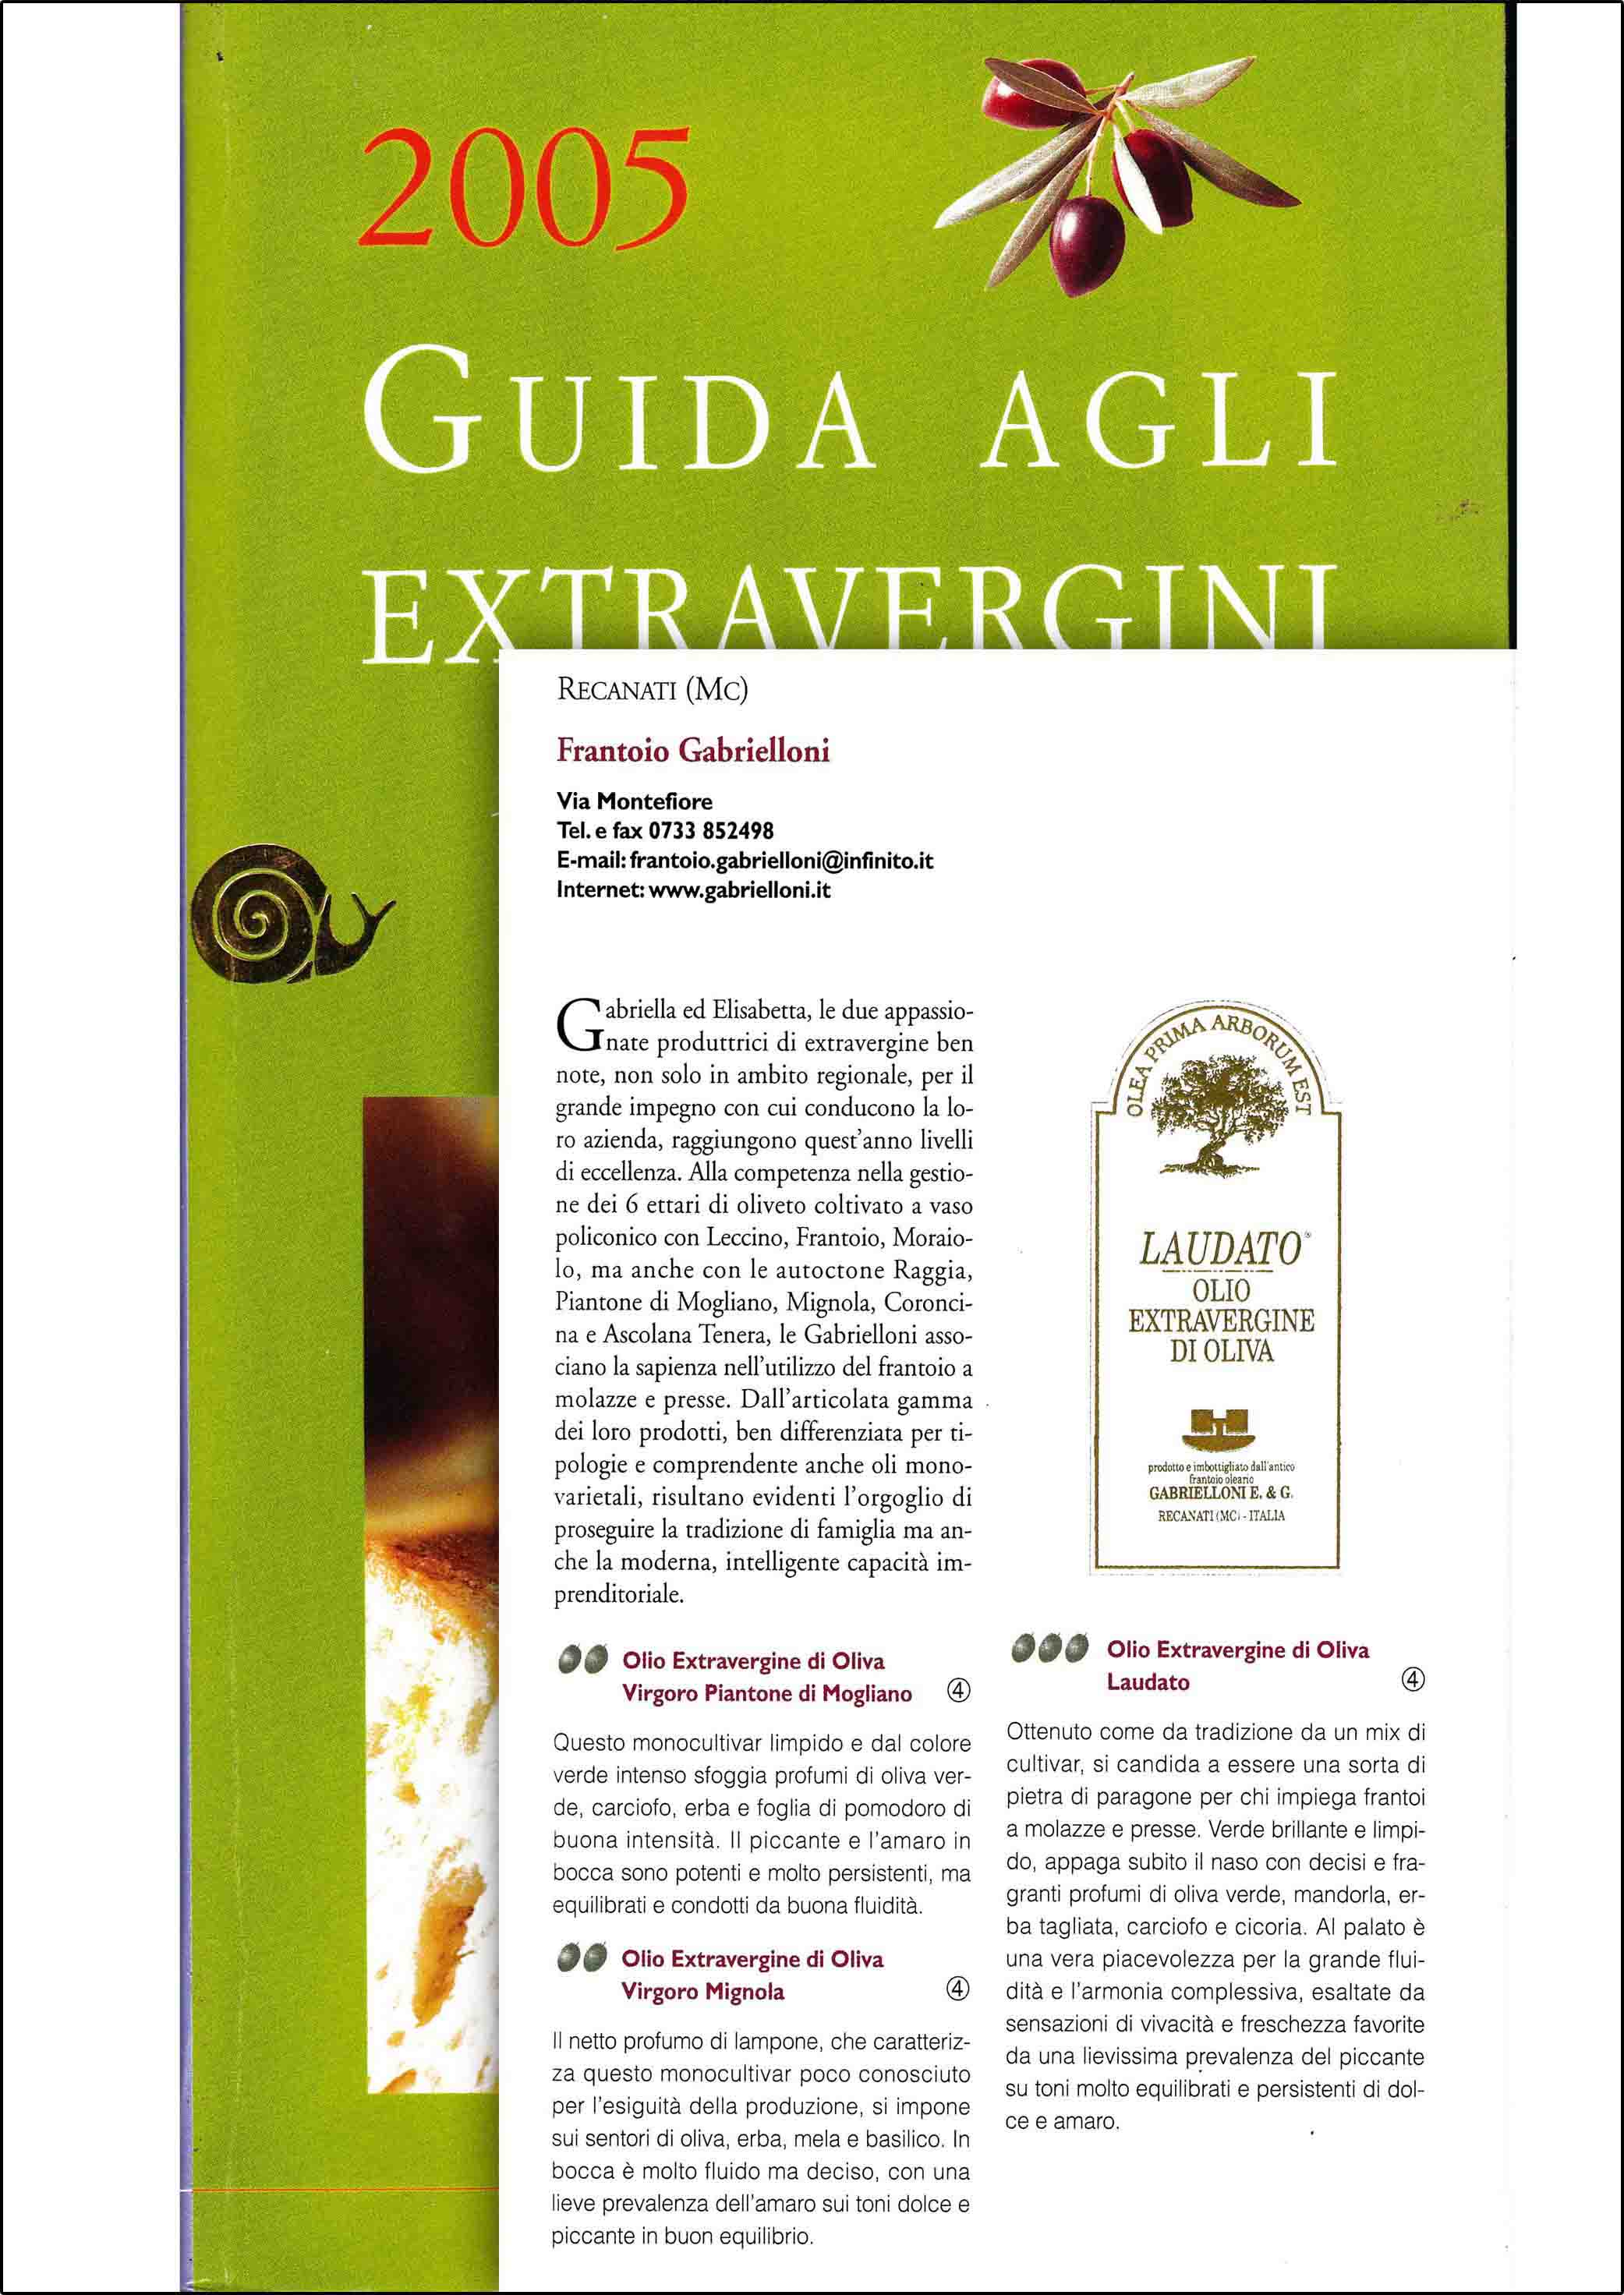 Slow Food Guide to Extra Virgin Olive Oils 2005